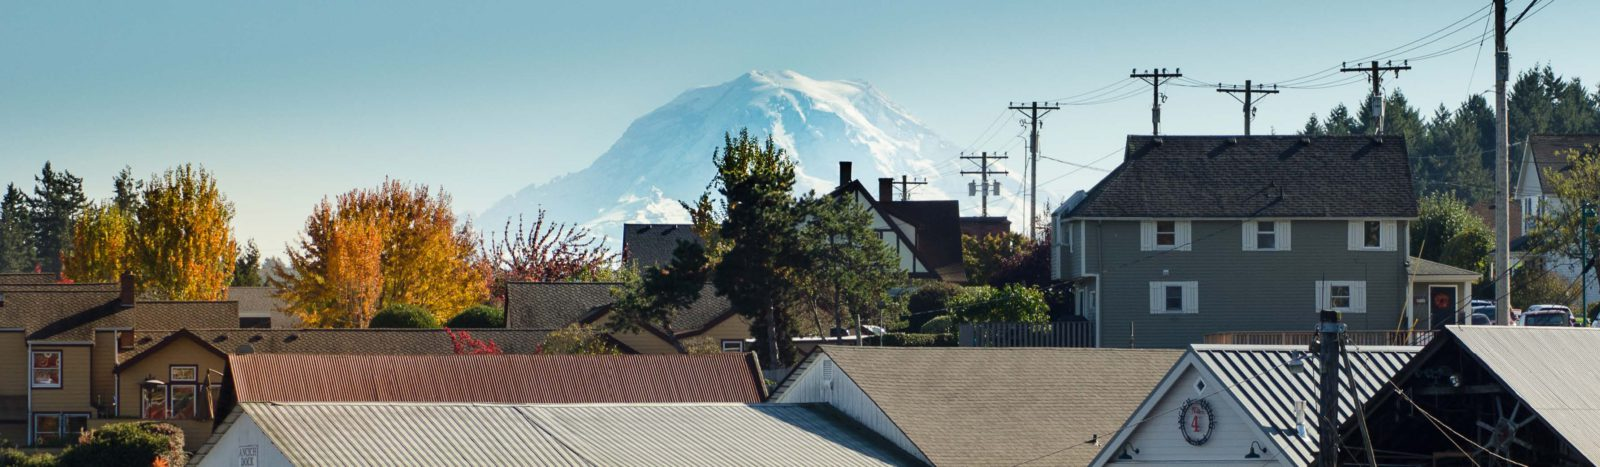 mountain behind trees roofs of houses